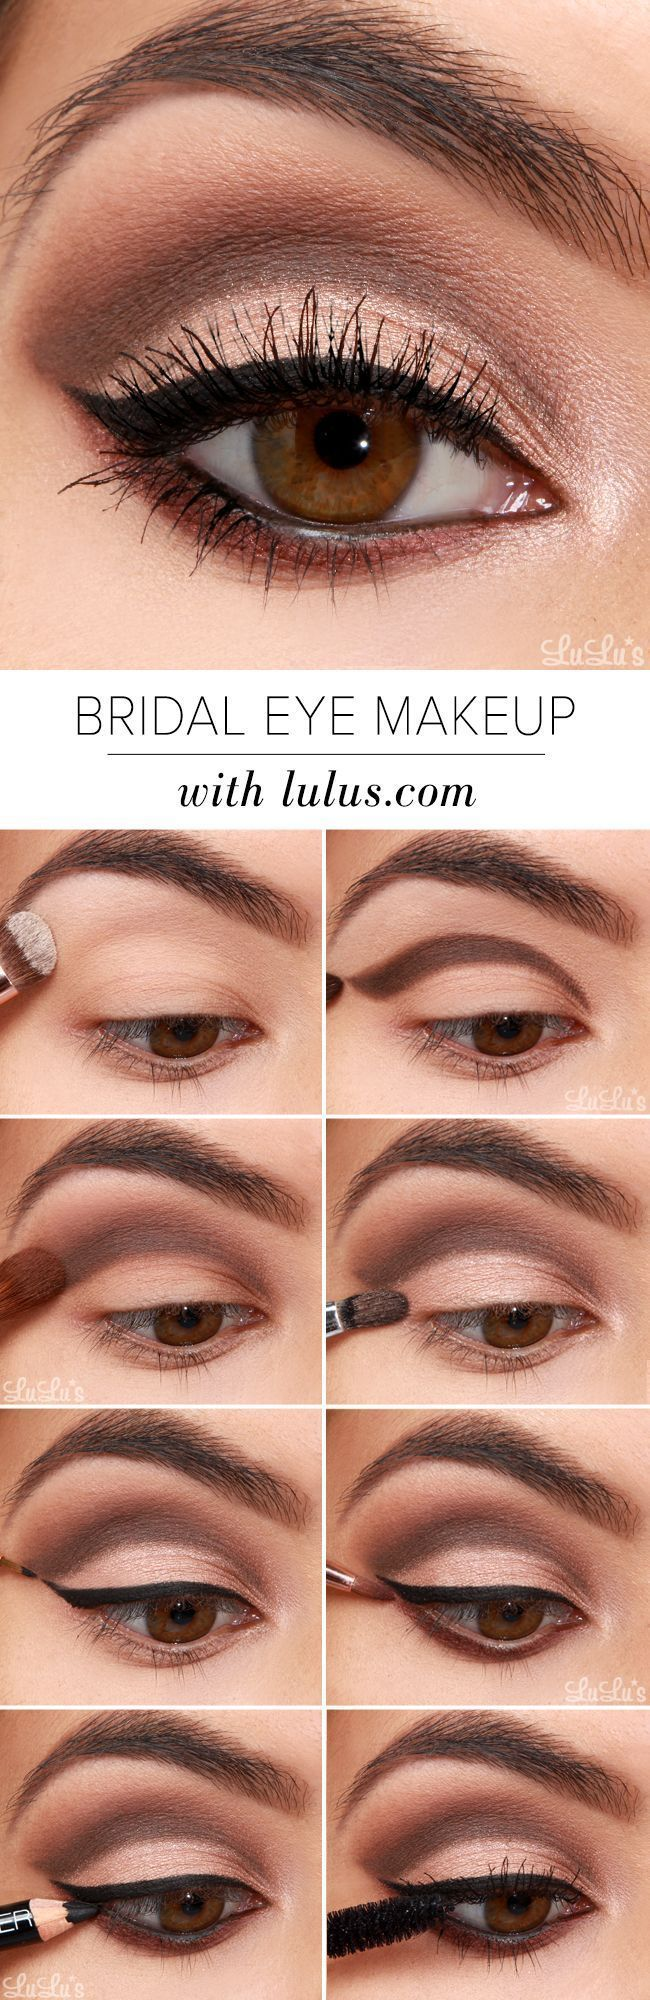 Make up for brown eyes step by step guide to make you look stunning on your wedd...